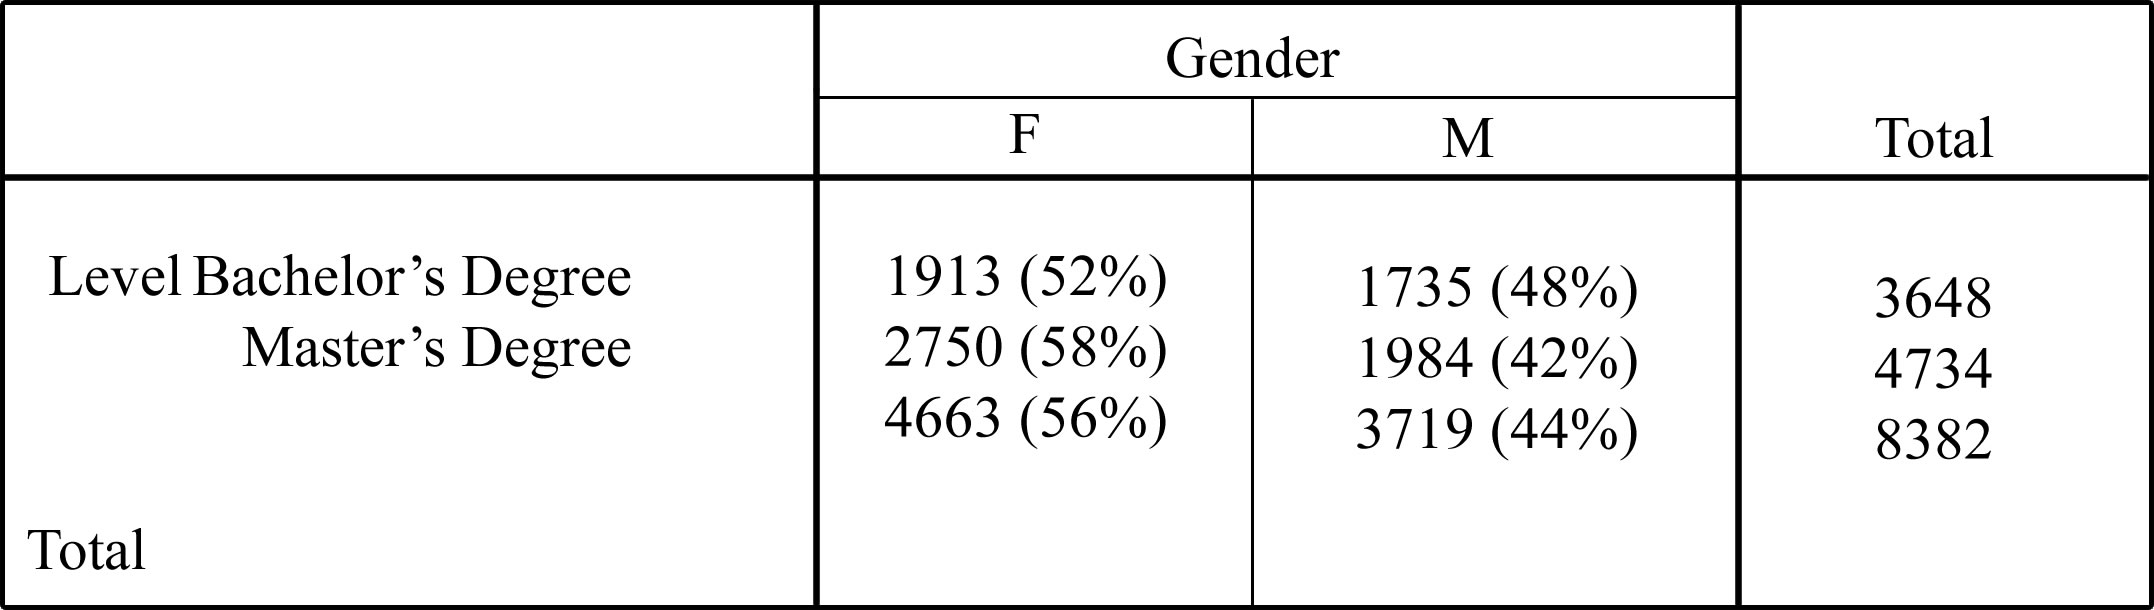 Table 1. Gender by Degree Level.